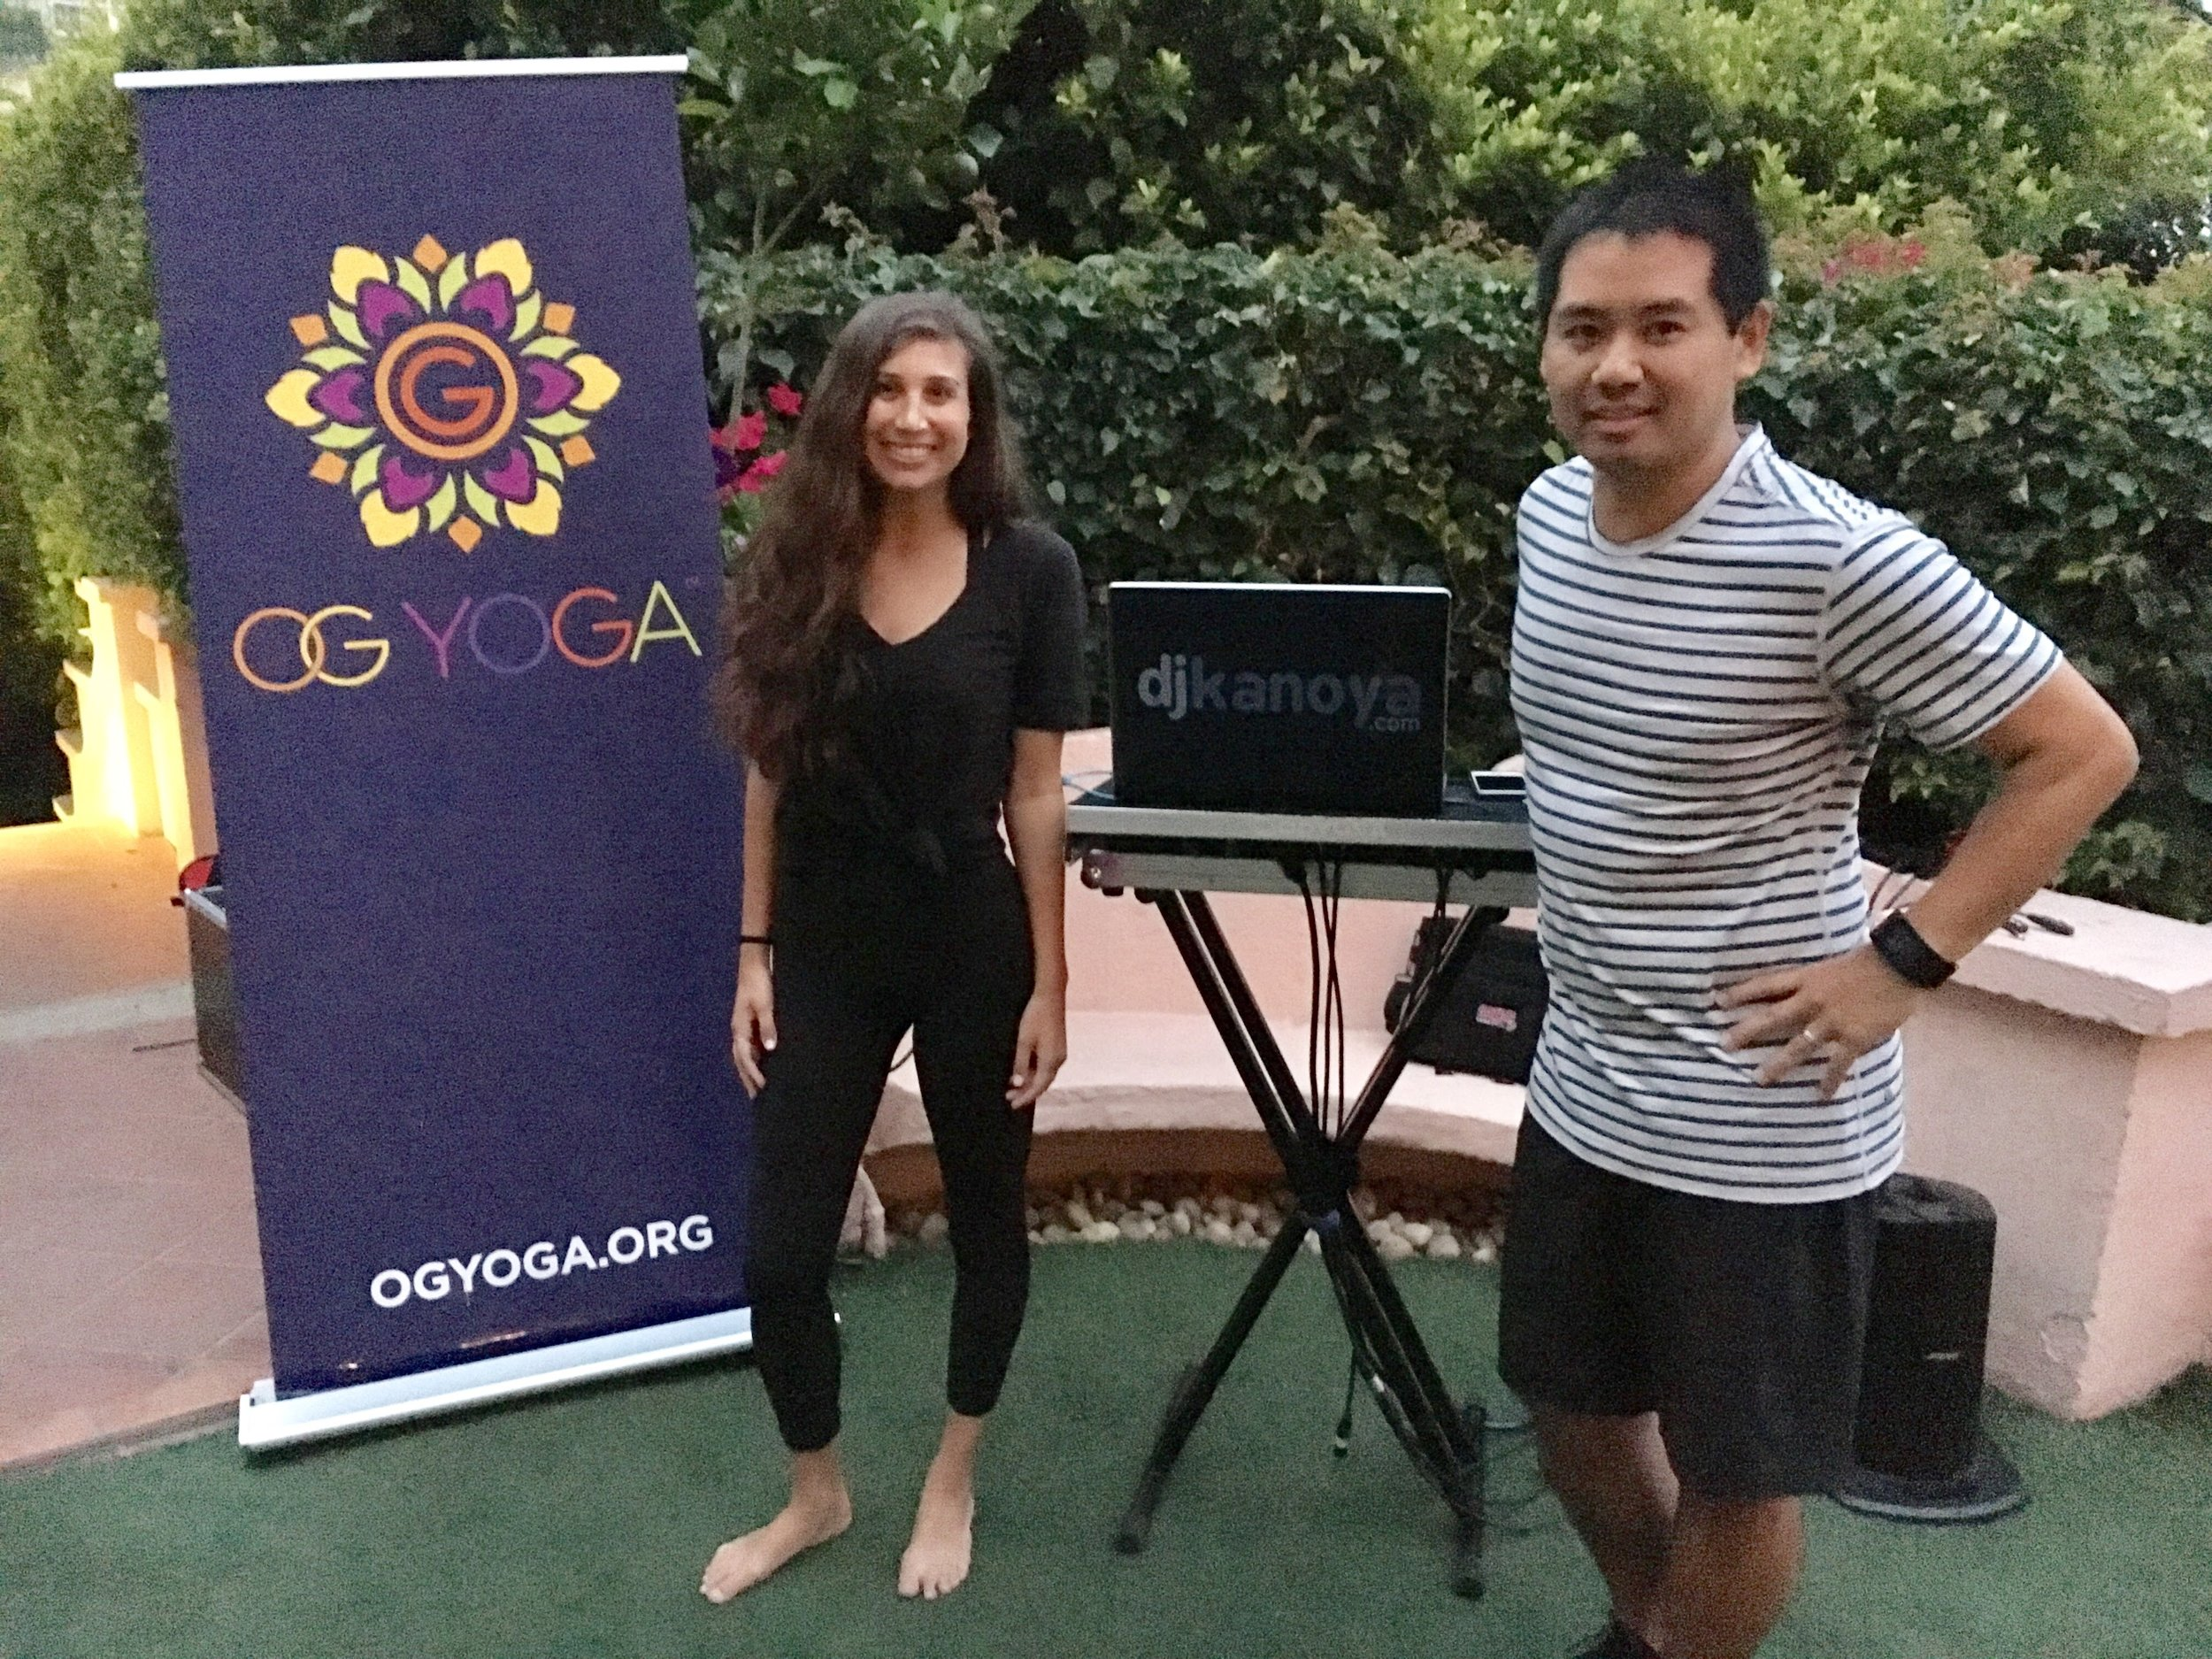 San Diego yoga instructor, Sara Shermis, and yoga DJ, Justin Kanoya